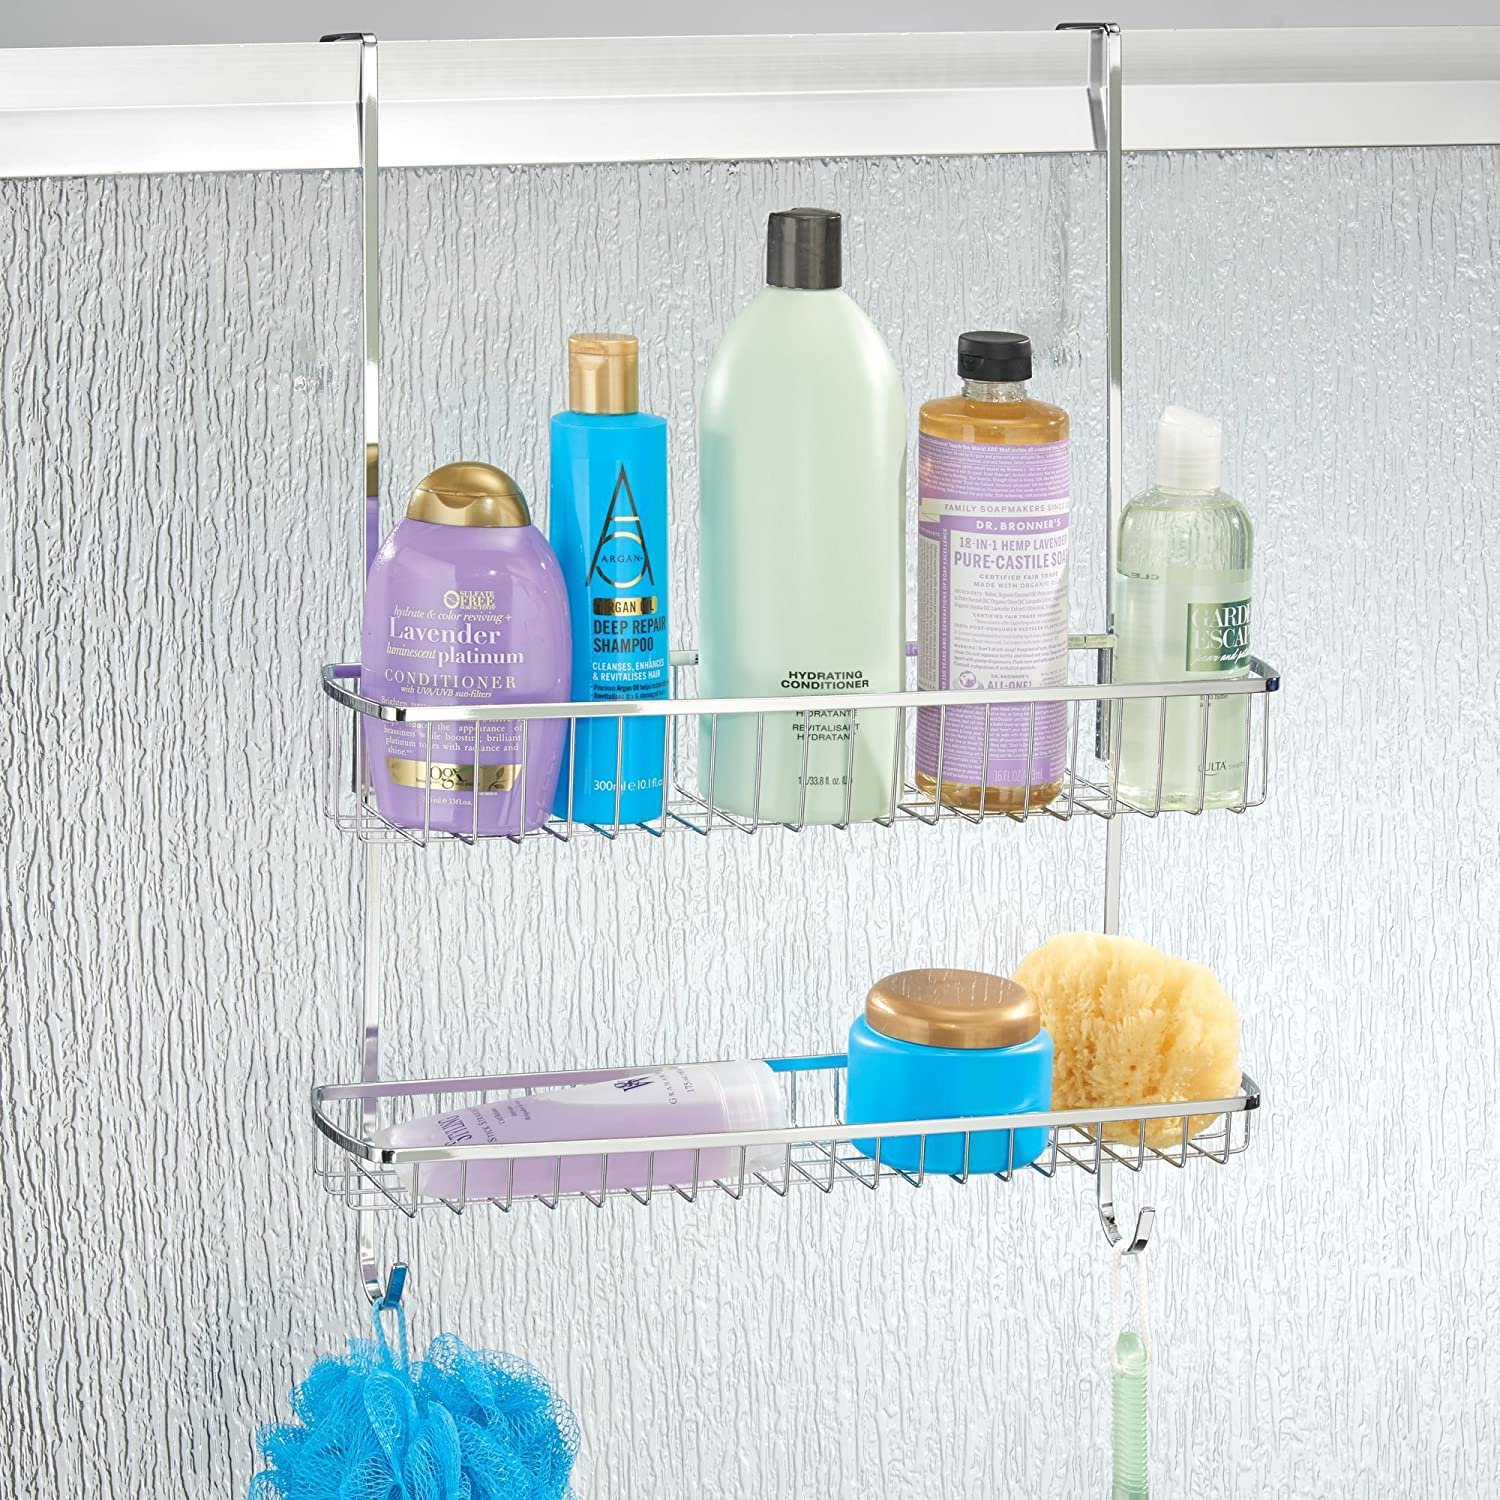 Amazon.com: mDesign Wide Over Shower Door Bathroom Tub & Shower Caddy, Hanging Storage Organizer Center - Built-in Hooks, Baskets on 2 Levels for Bathroom ...